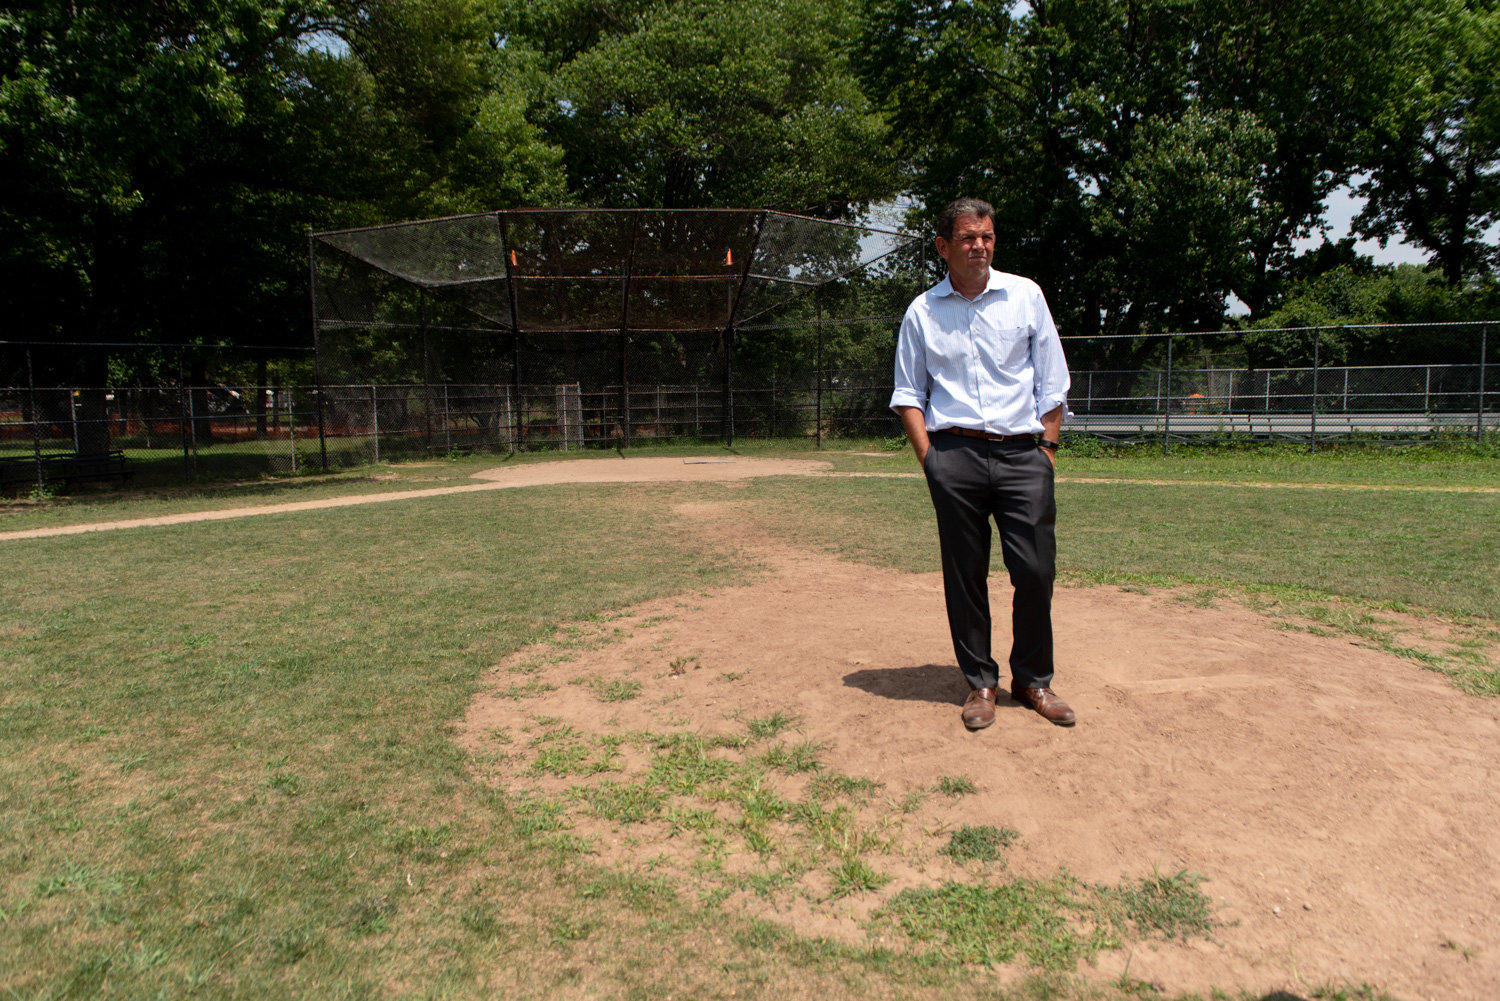 Rob Walsh, senior advisor to Manhattan College's president, has been pushing fo the city to renovate the ballfields in Van Cortlandt Park, and endorses the idea of naming it honor of Joseph Coppo, a 1975 graduate of the school who died on Sept. 11, 2001.